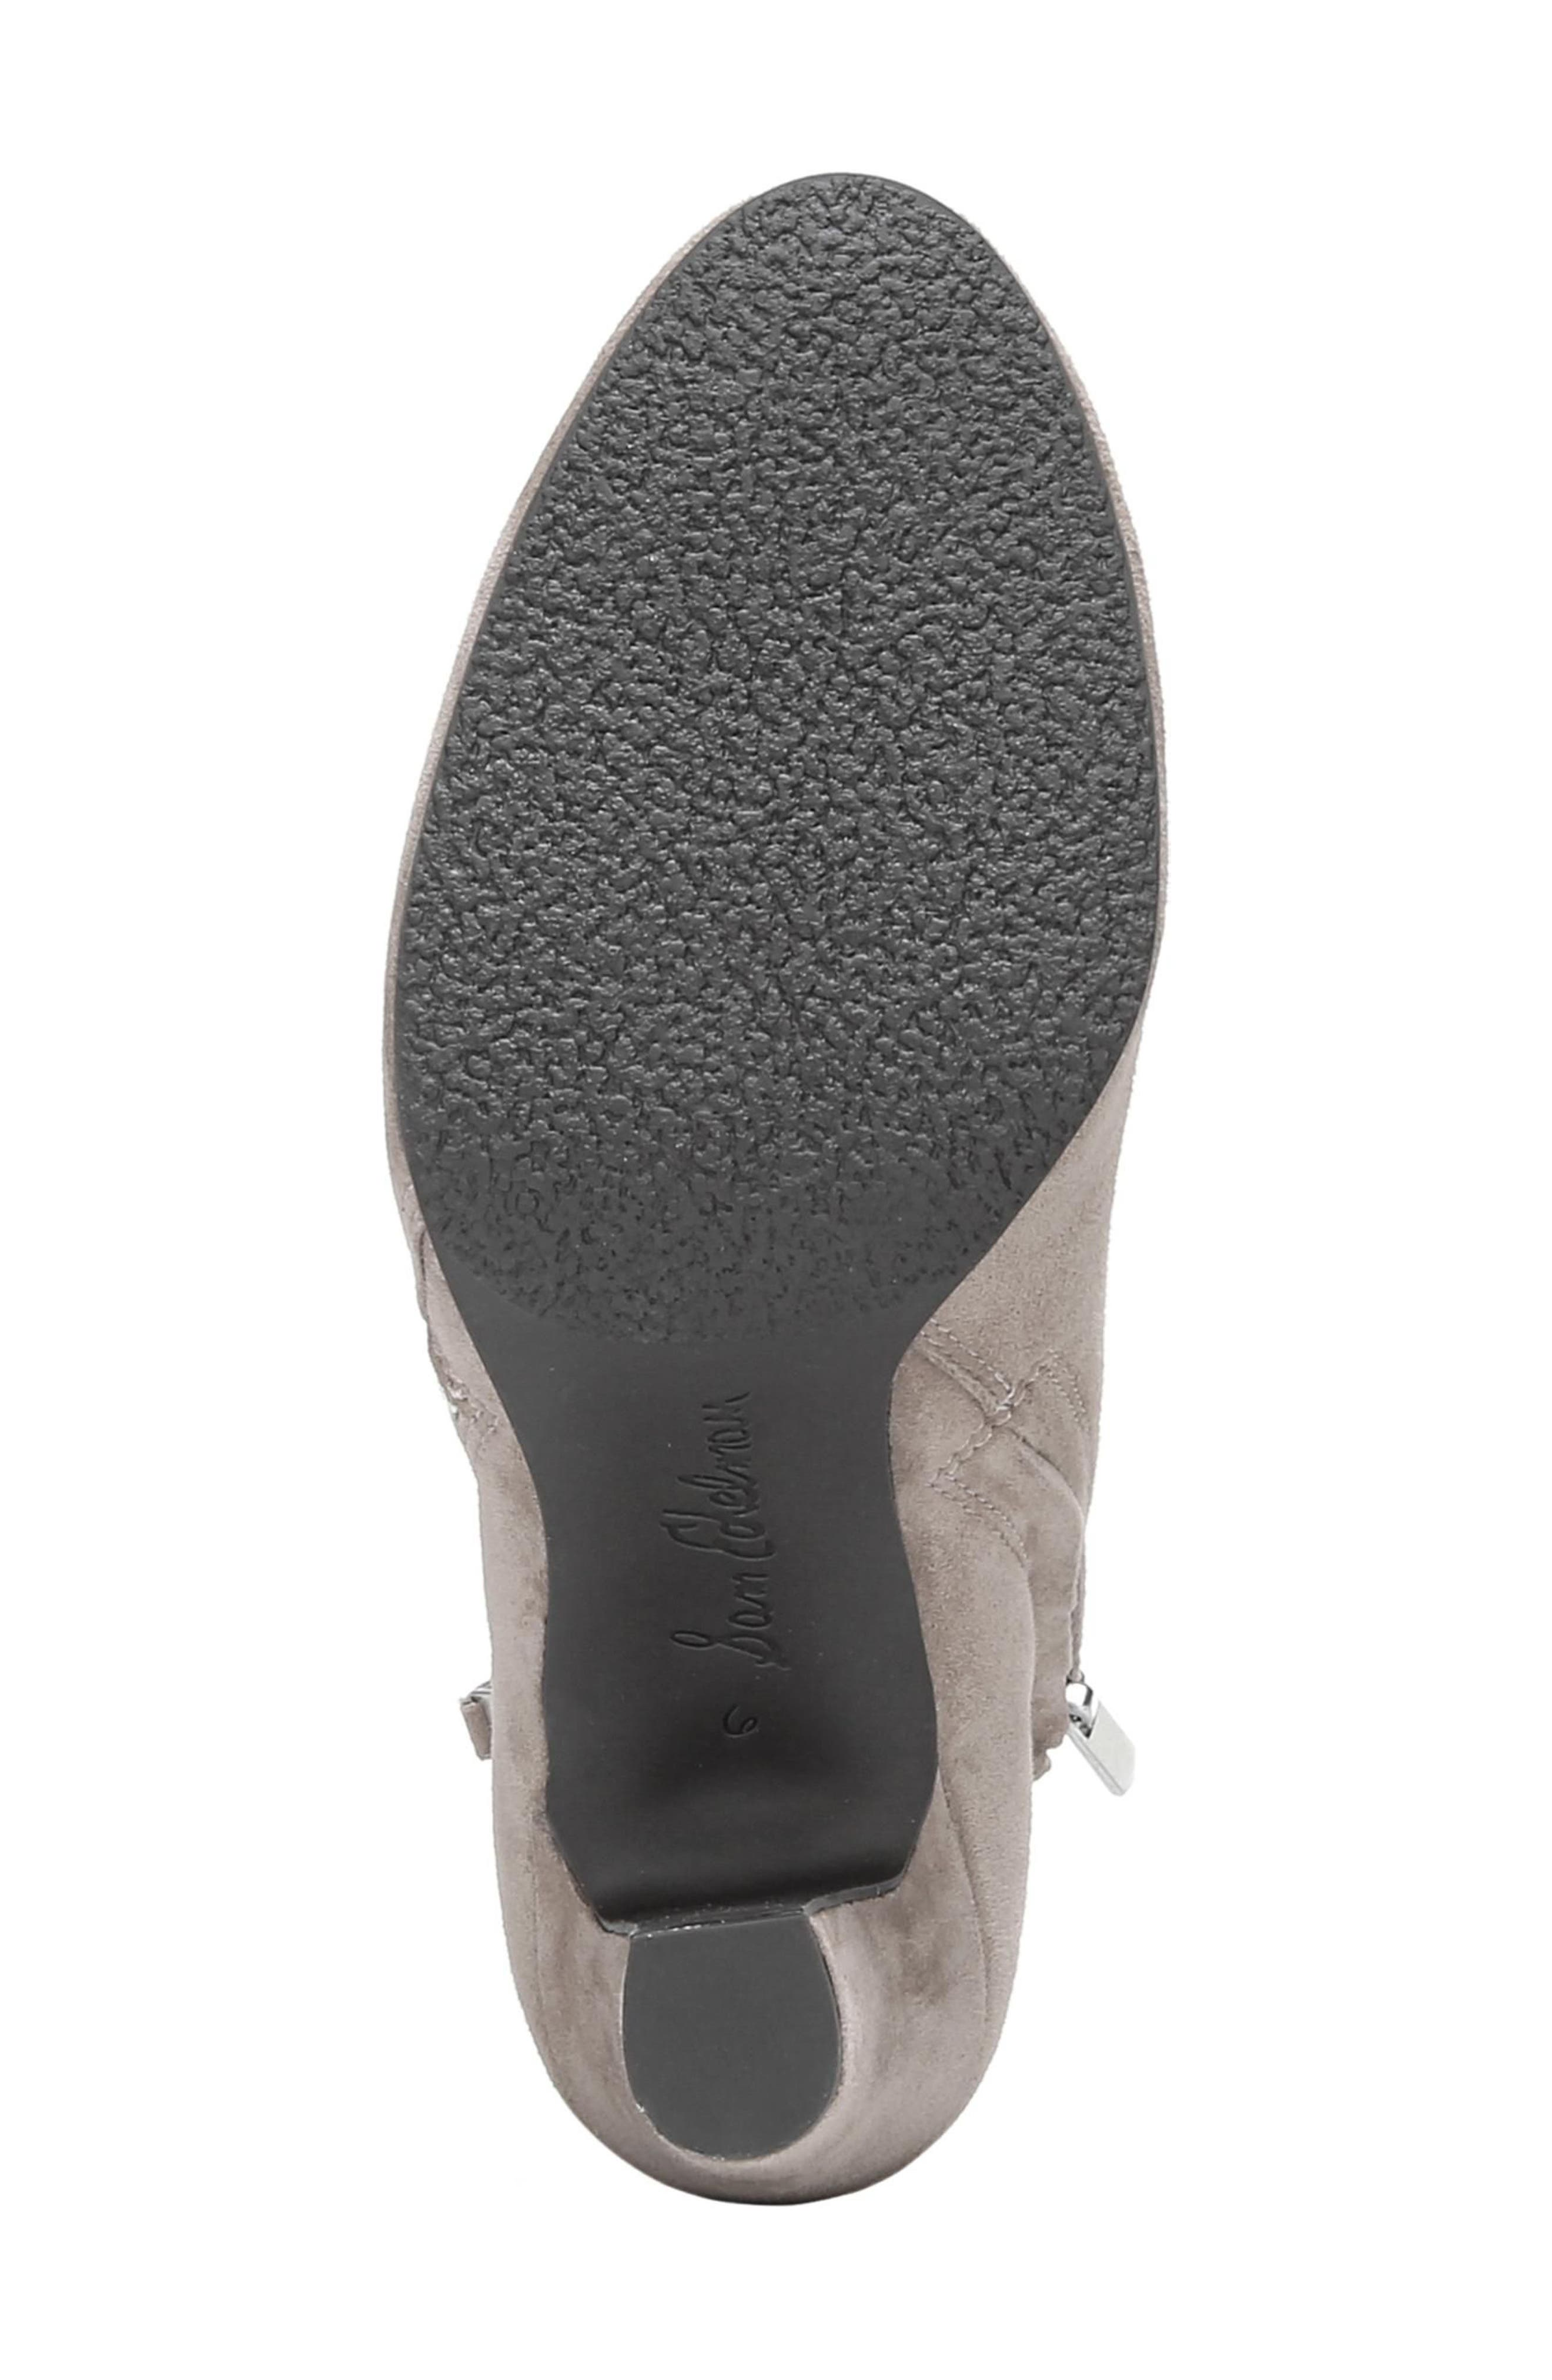 Sadee Angle Zip Bootie,                             Alternate thumbnail 6, color,                             NEW PUTTY SUEDE